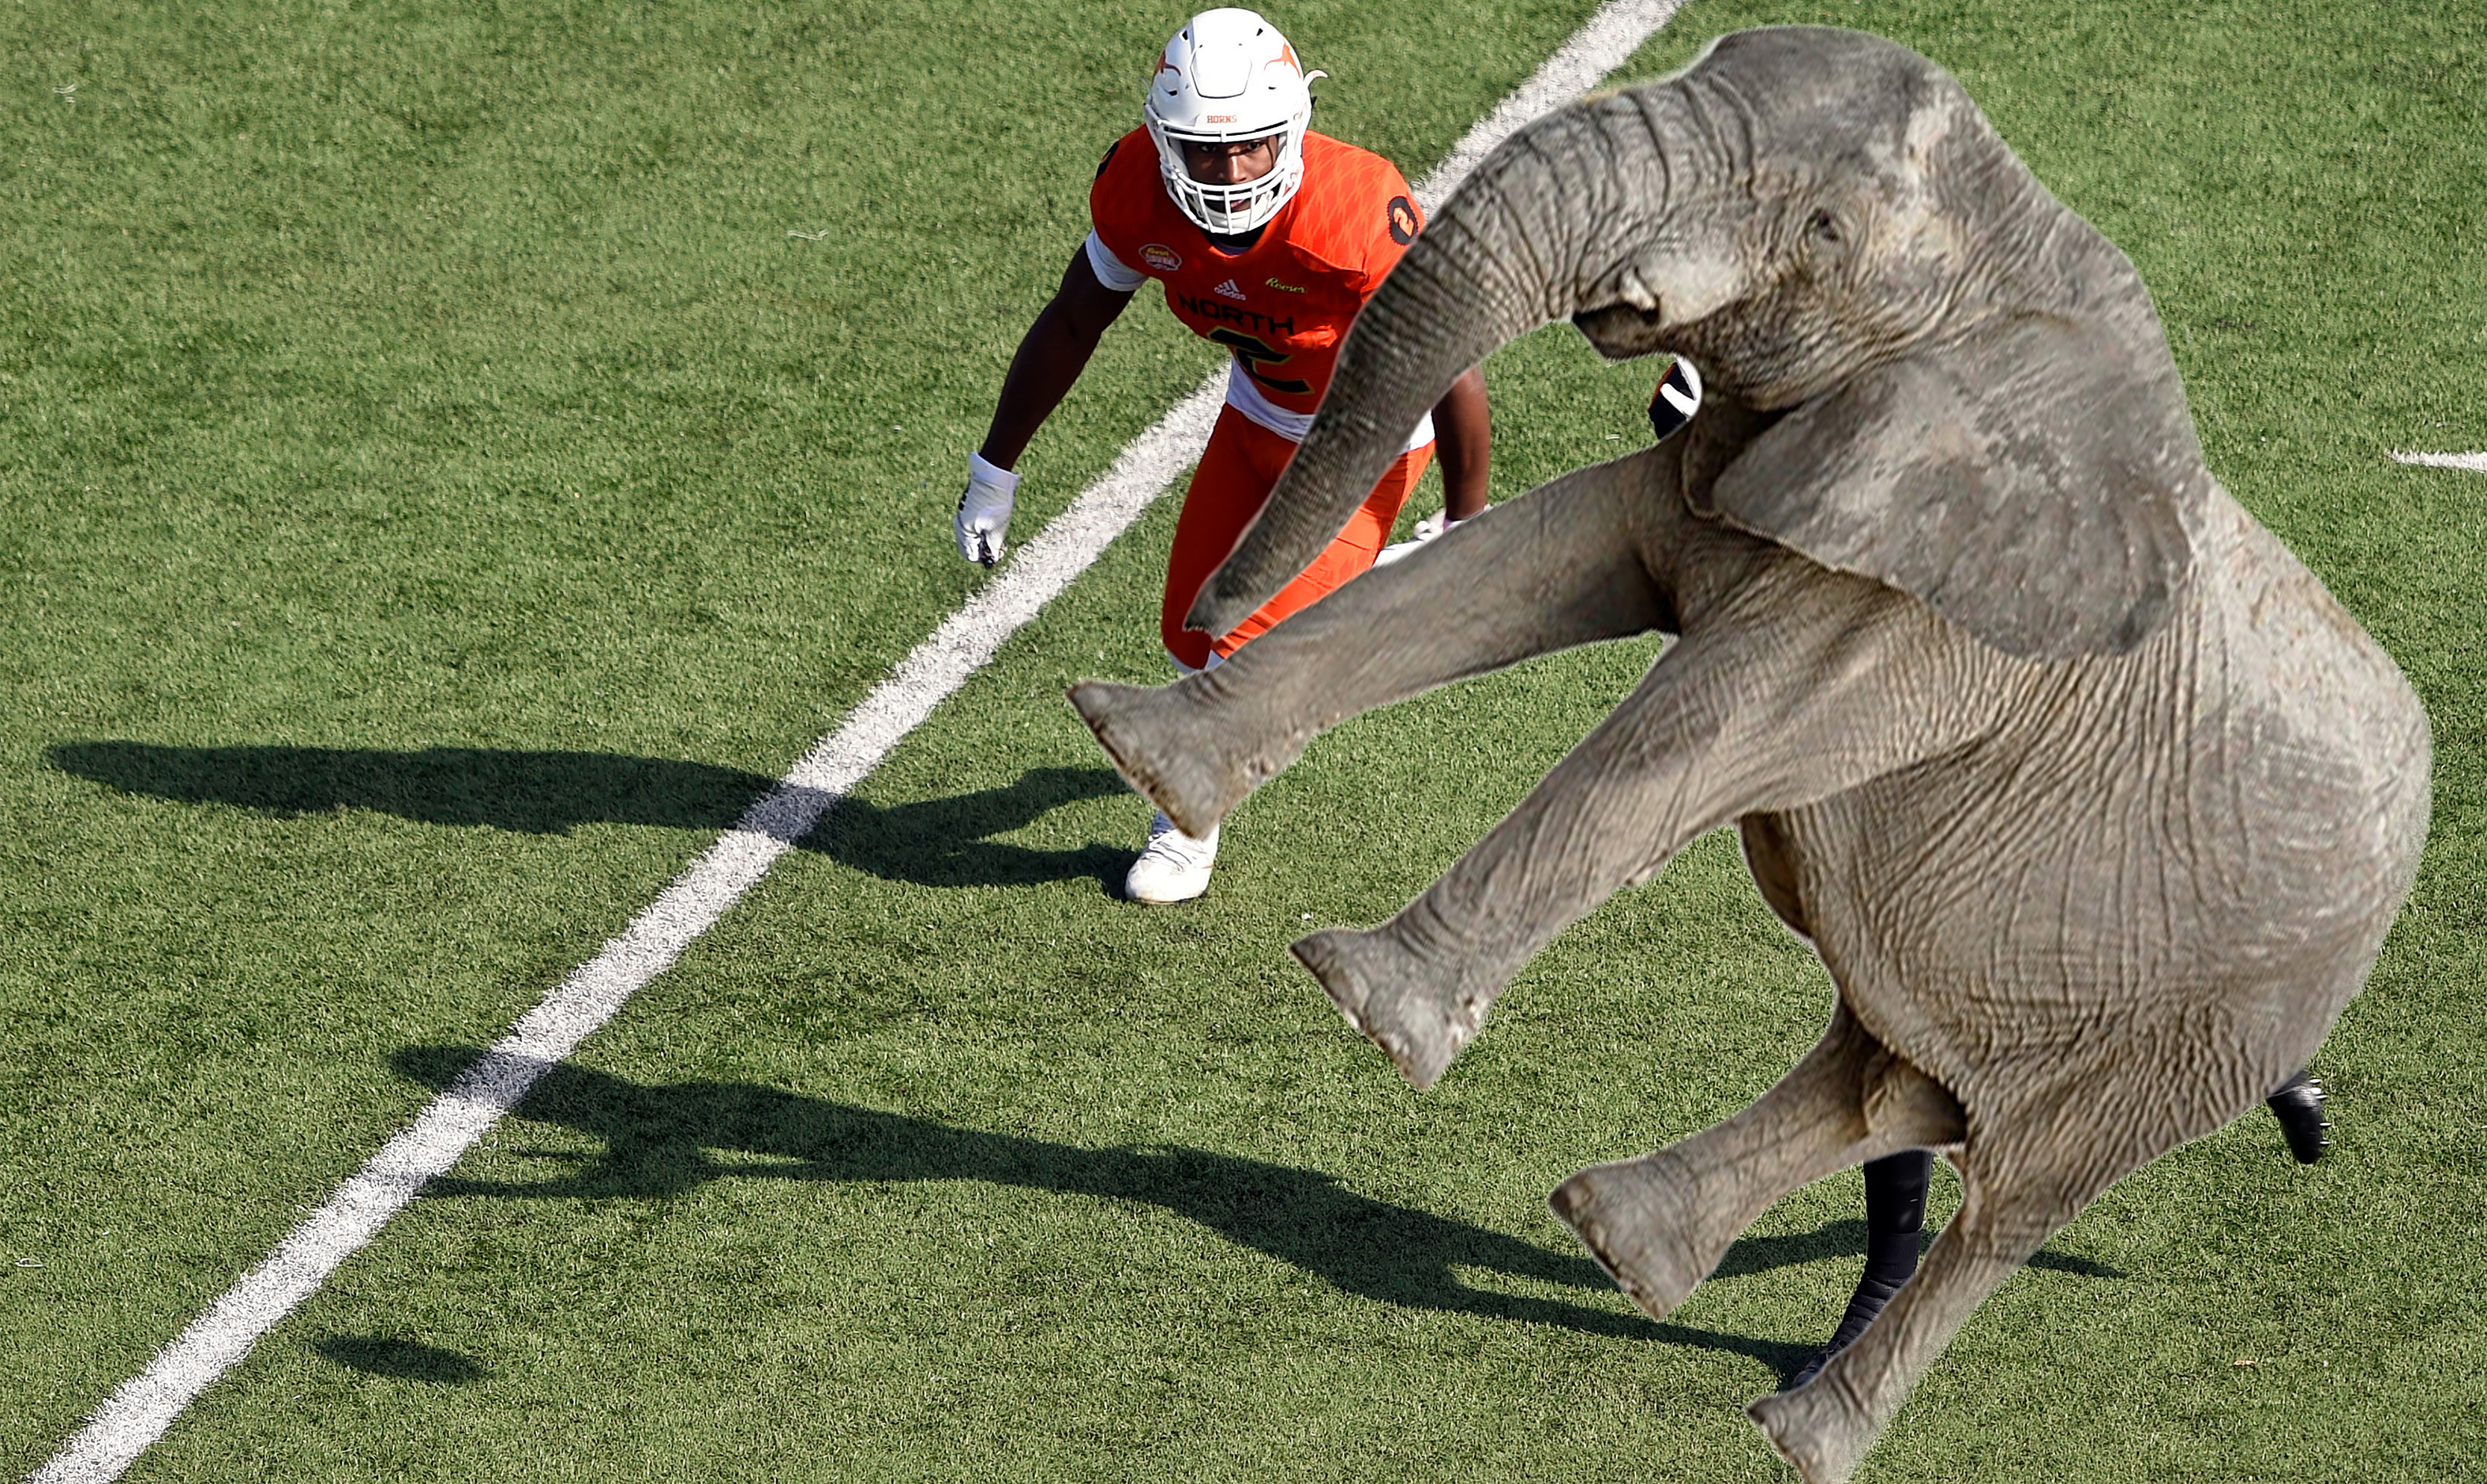 'I can't press an elephant.' NFL DB prospects on which animal would be hardest to cover